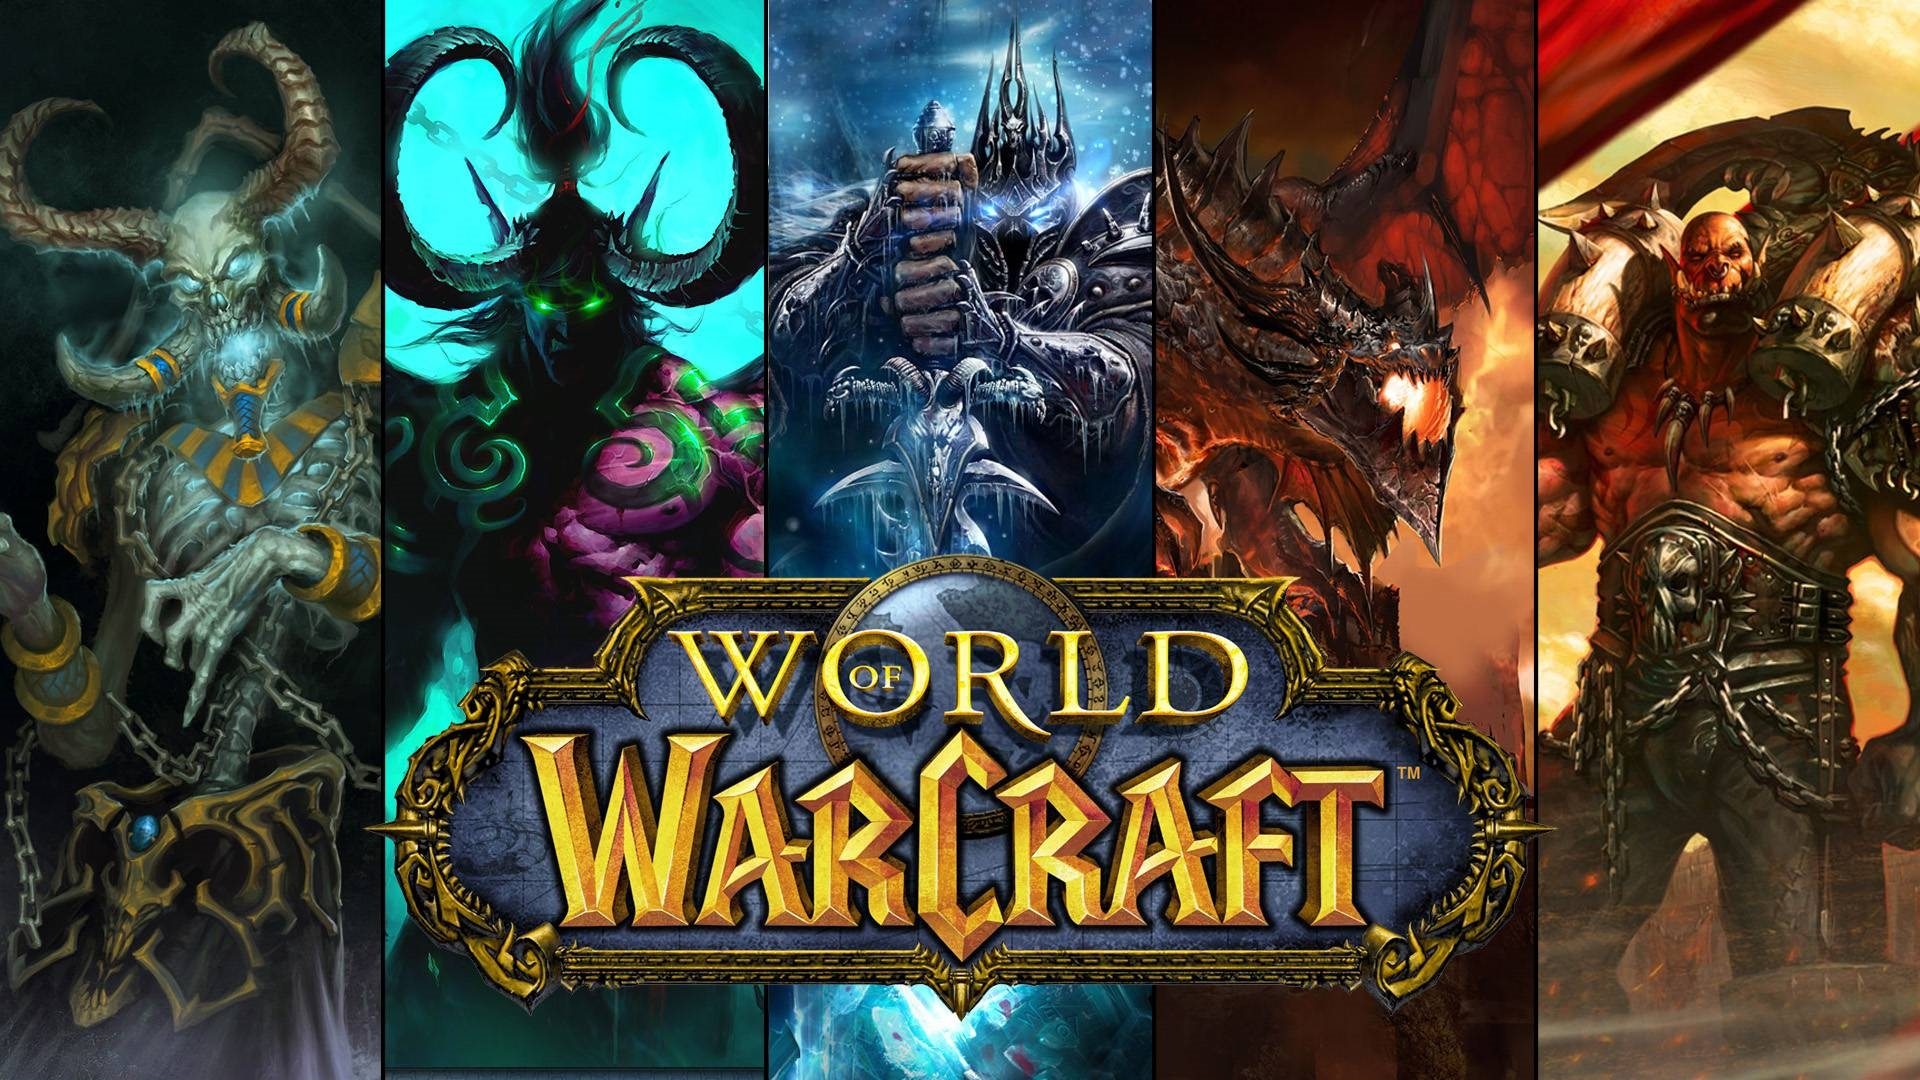 Welcome to the World of Warcraft